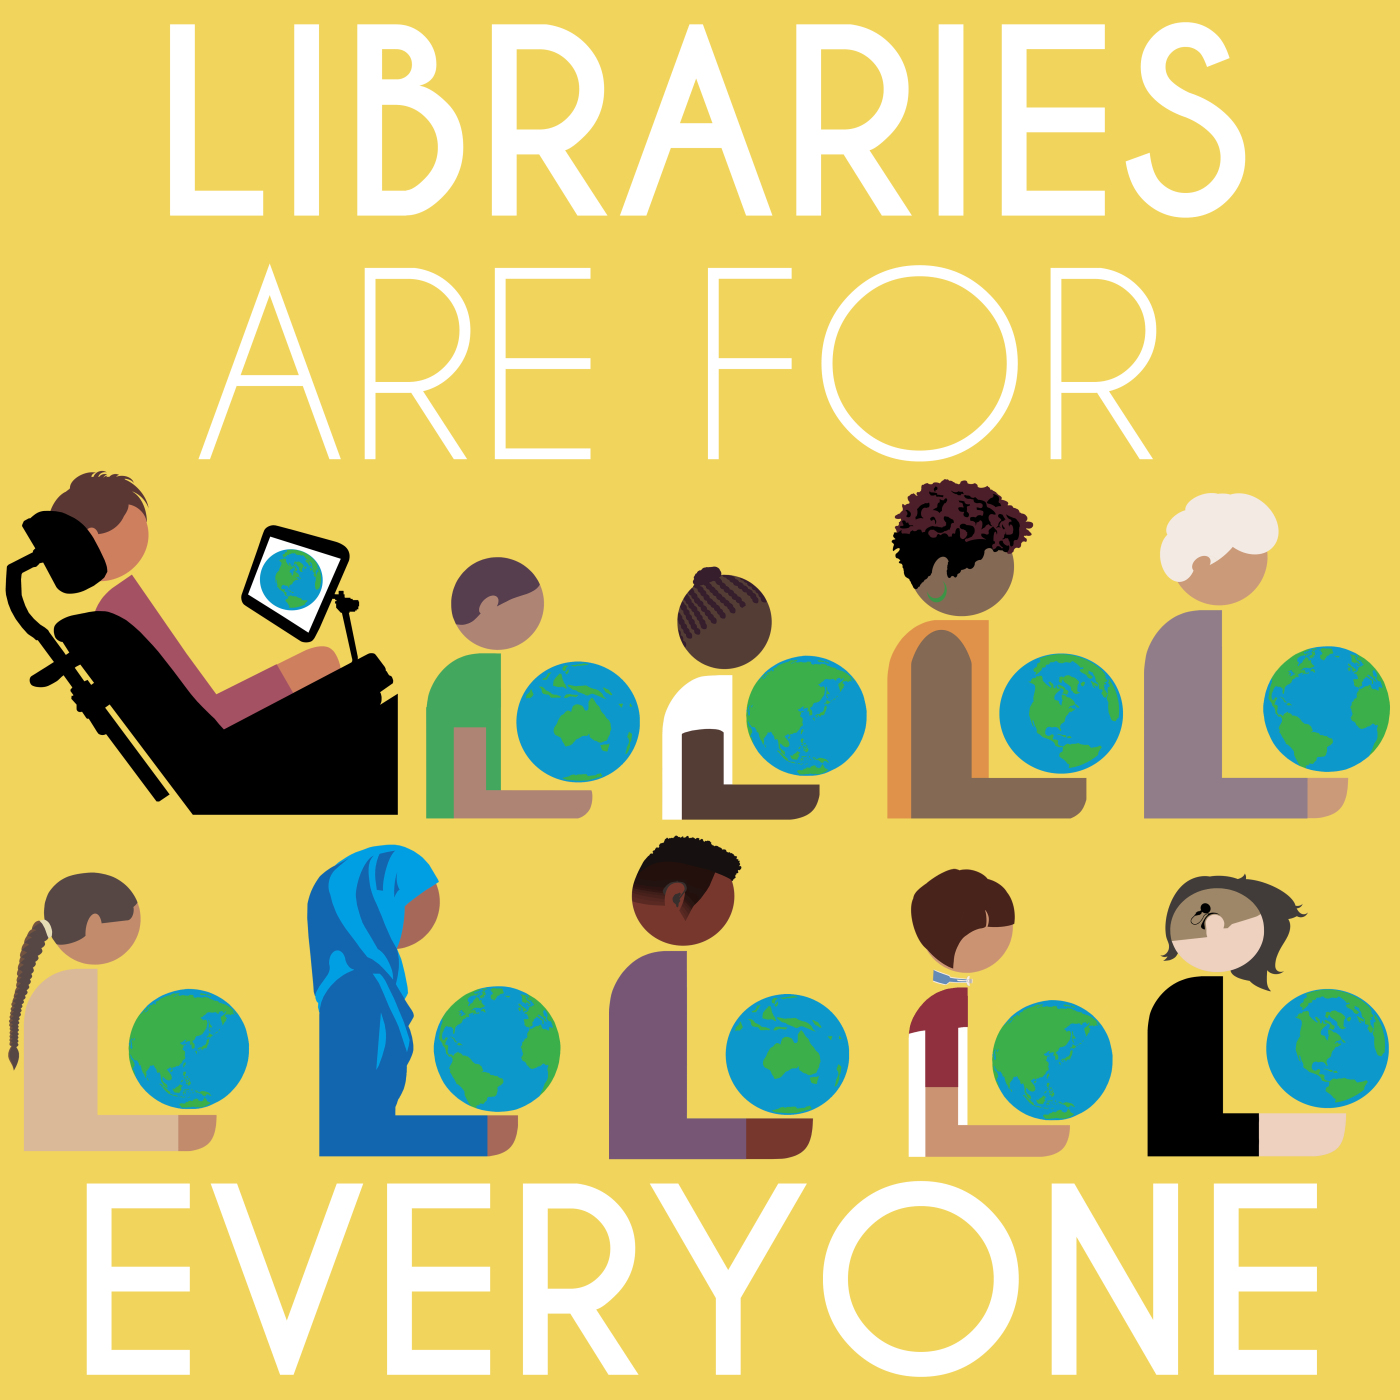 libraries are for everyone 2.png